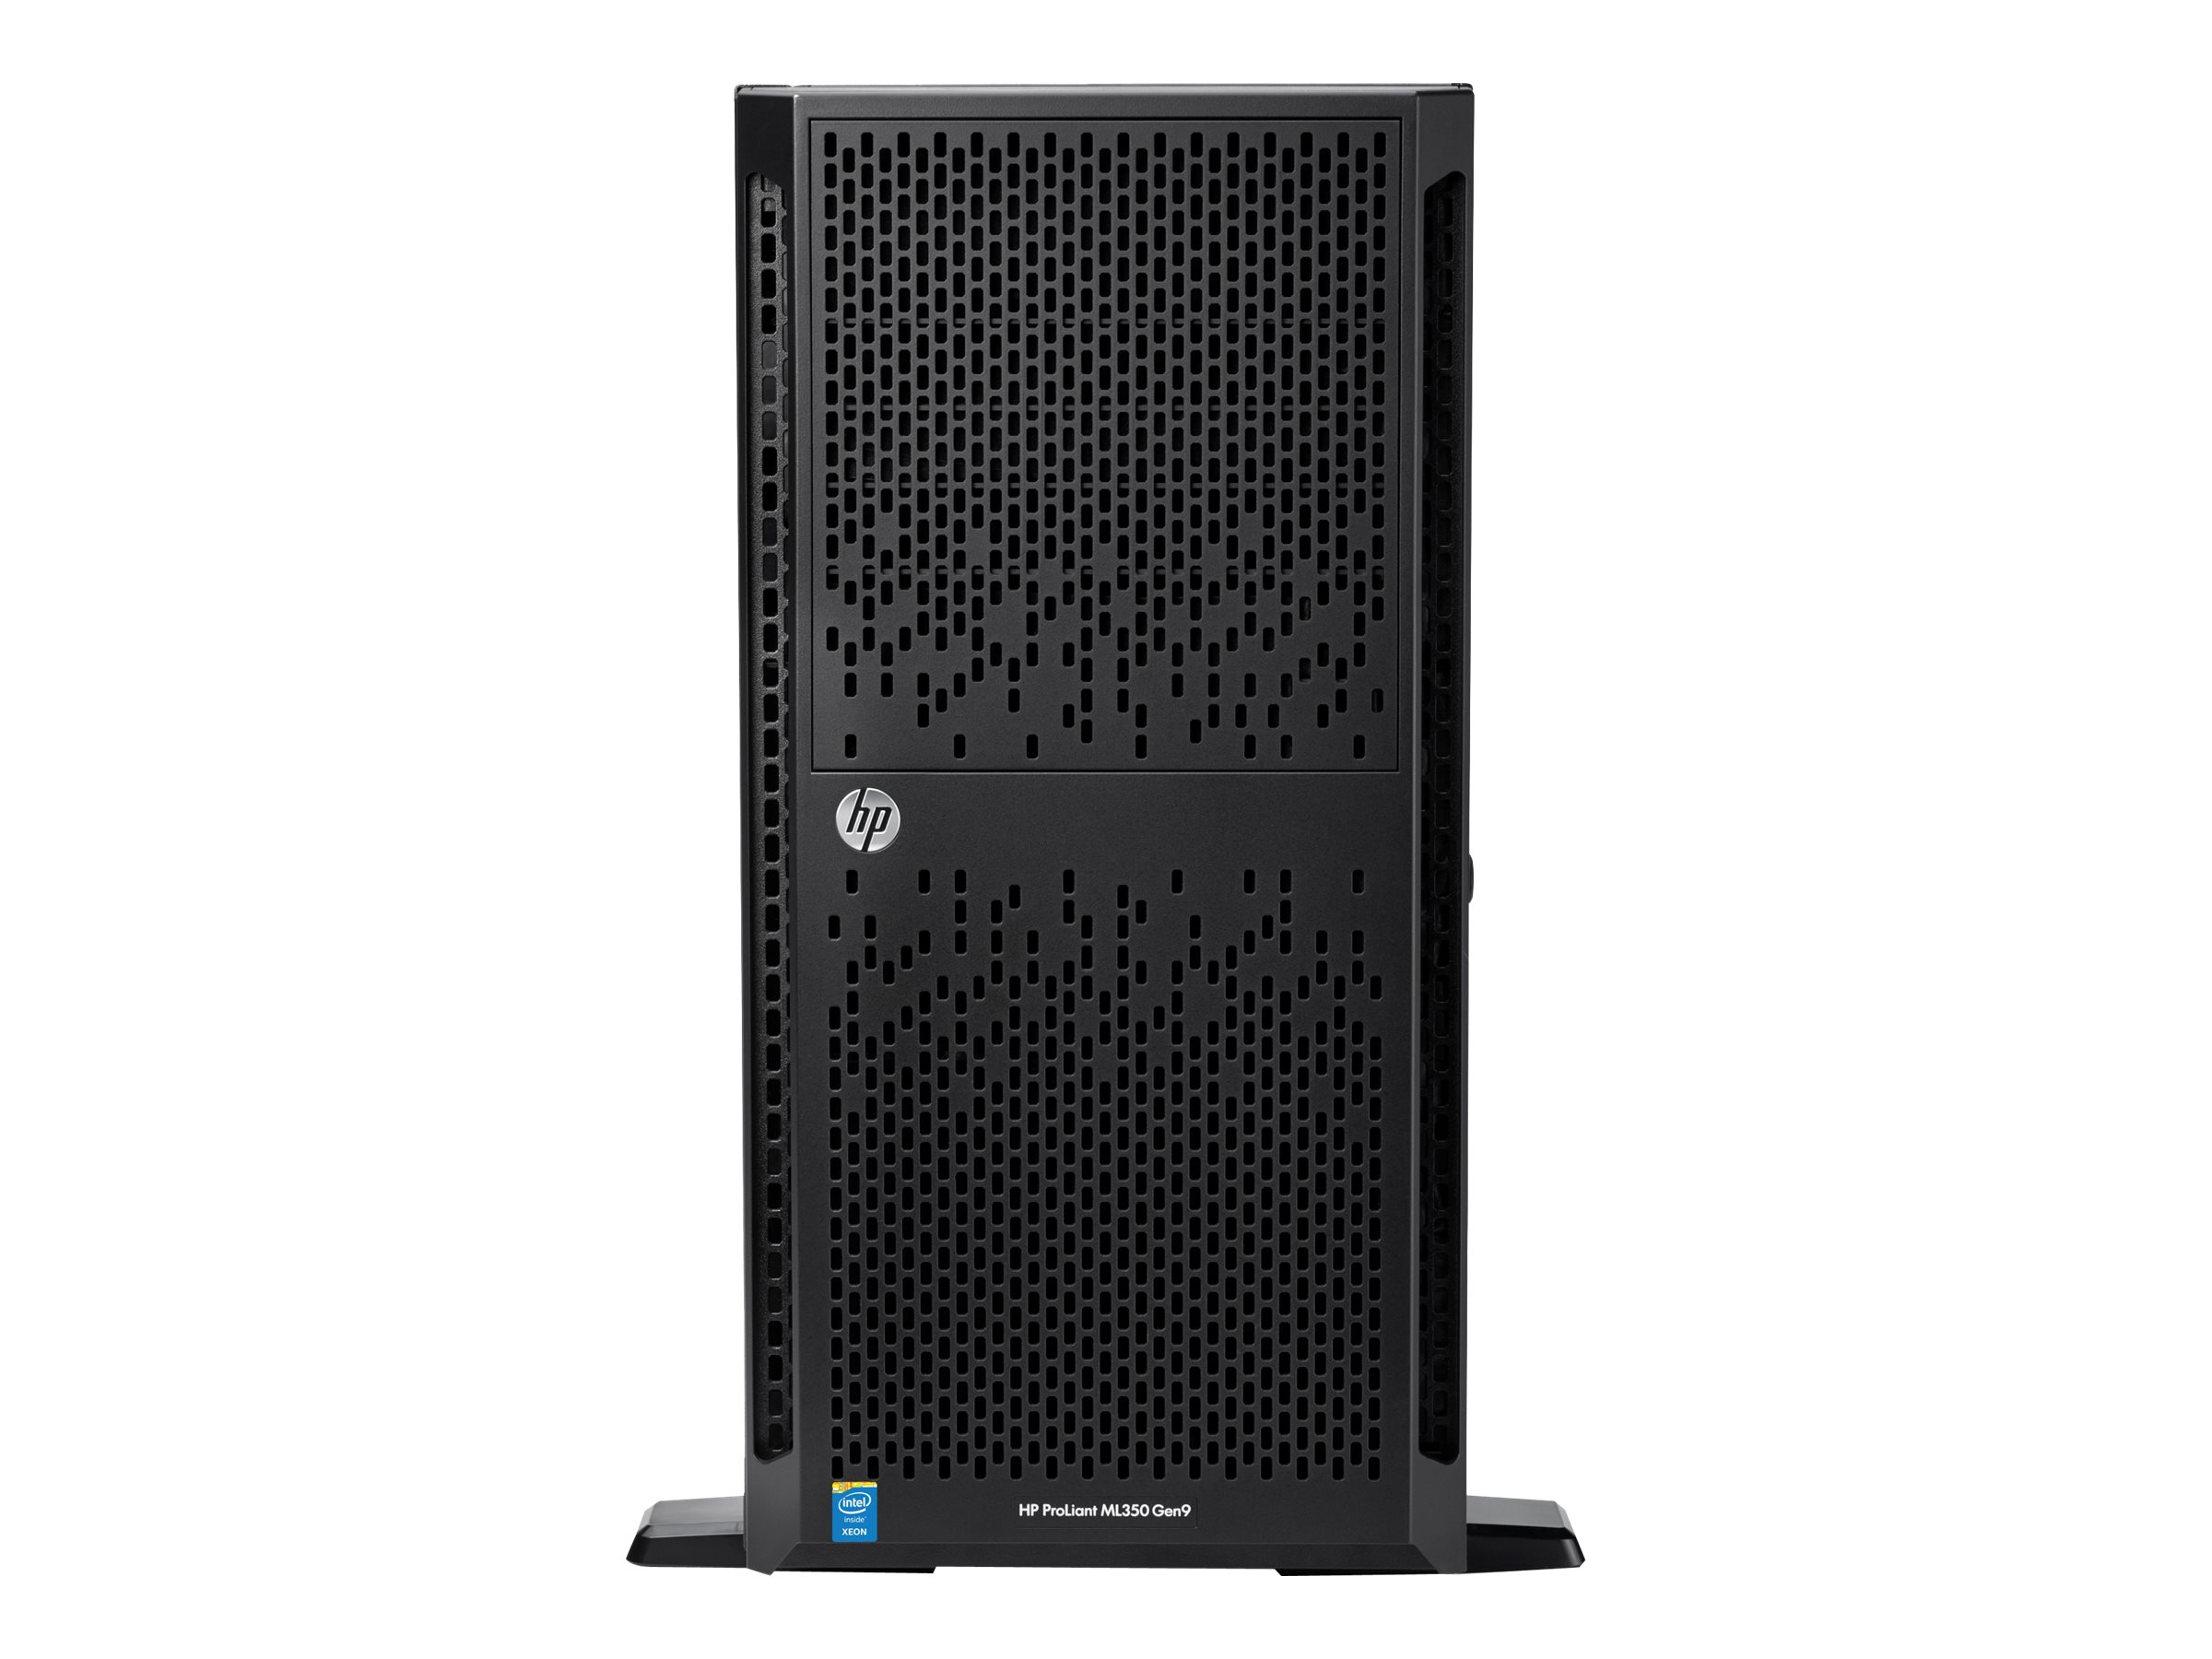 HPE ProLiant ML350 Gen9 Performance - Server - Tower - 5U - zweiweg - 2 x Xeon E5-2650V4 / 2.2 GHz